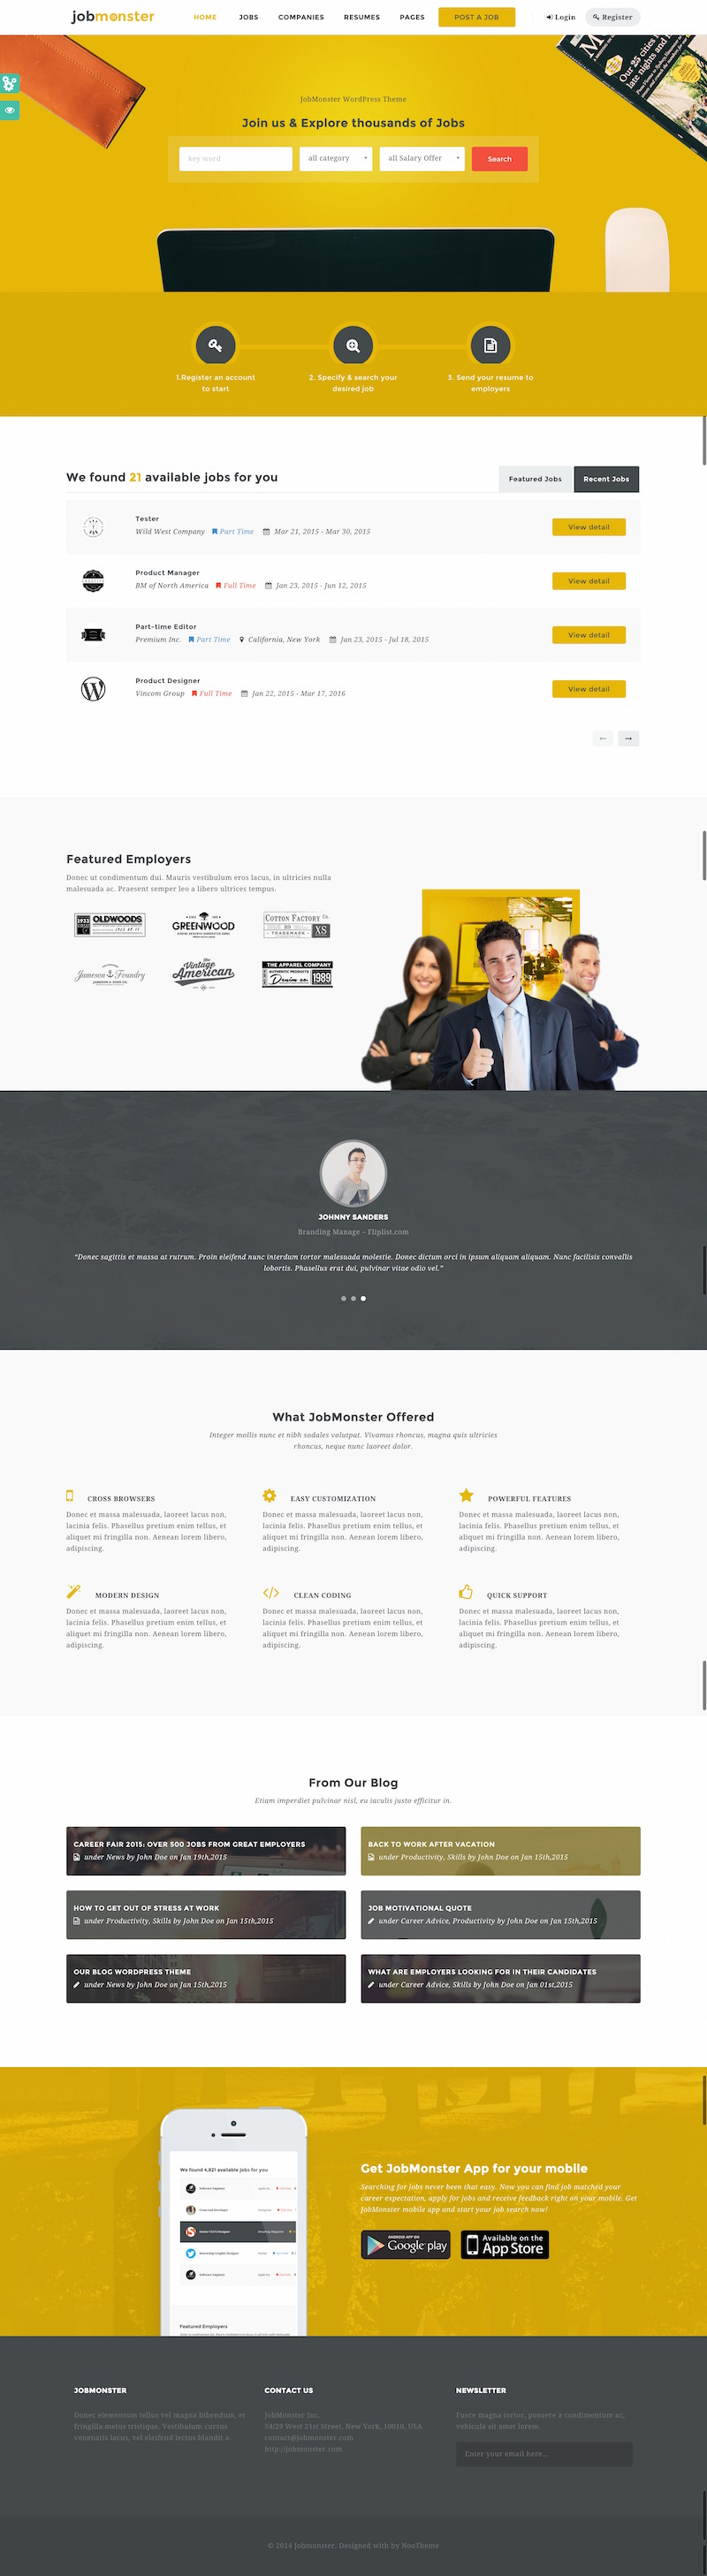 jobmonster-wordpress-theme